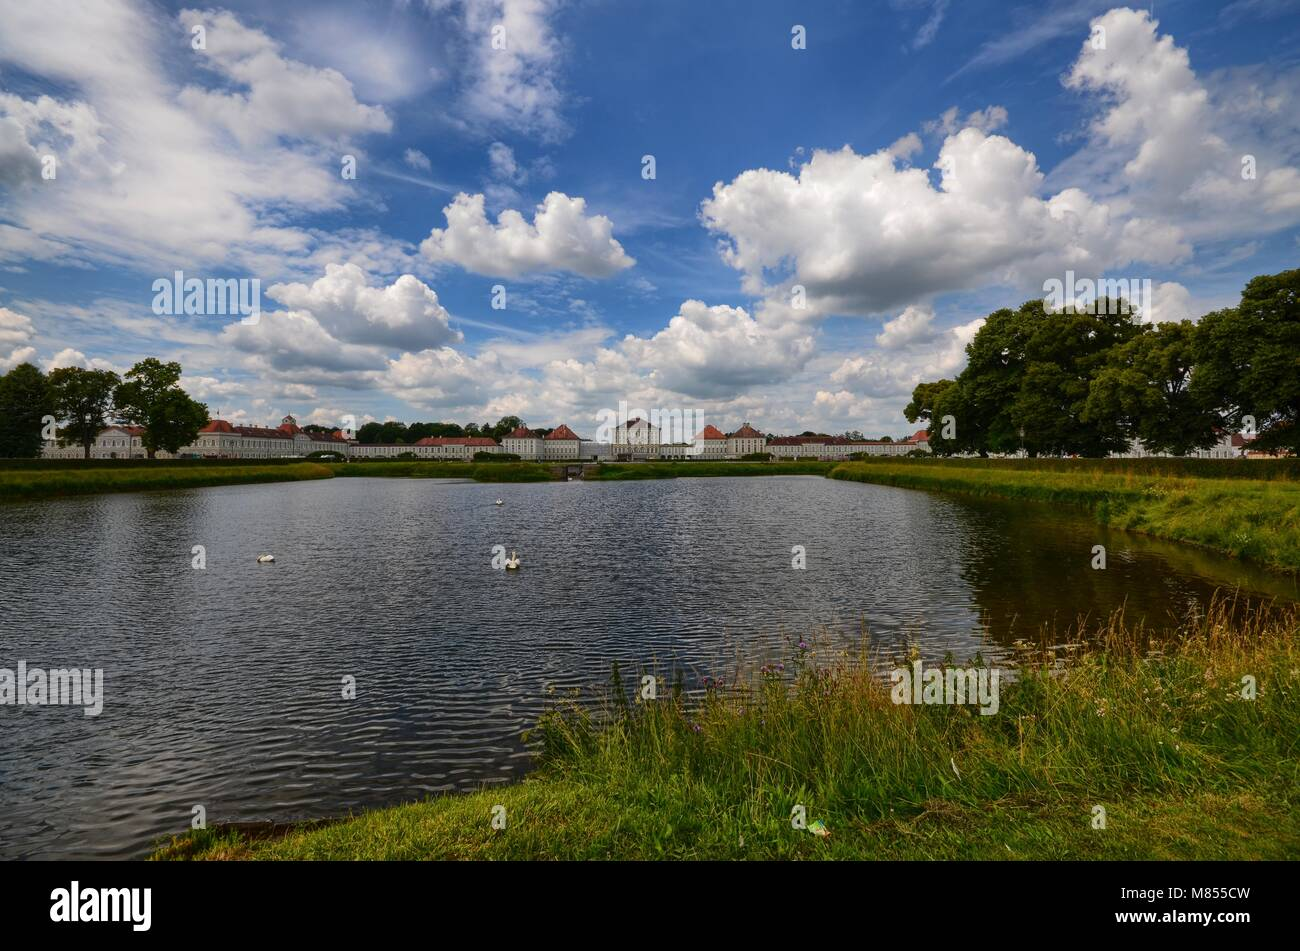 View of the Nymphenburg castle. Munich, Bavaria, Germany June 26, 2015 1:00 pm - Stock Image